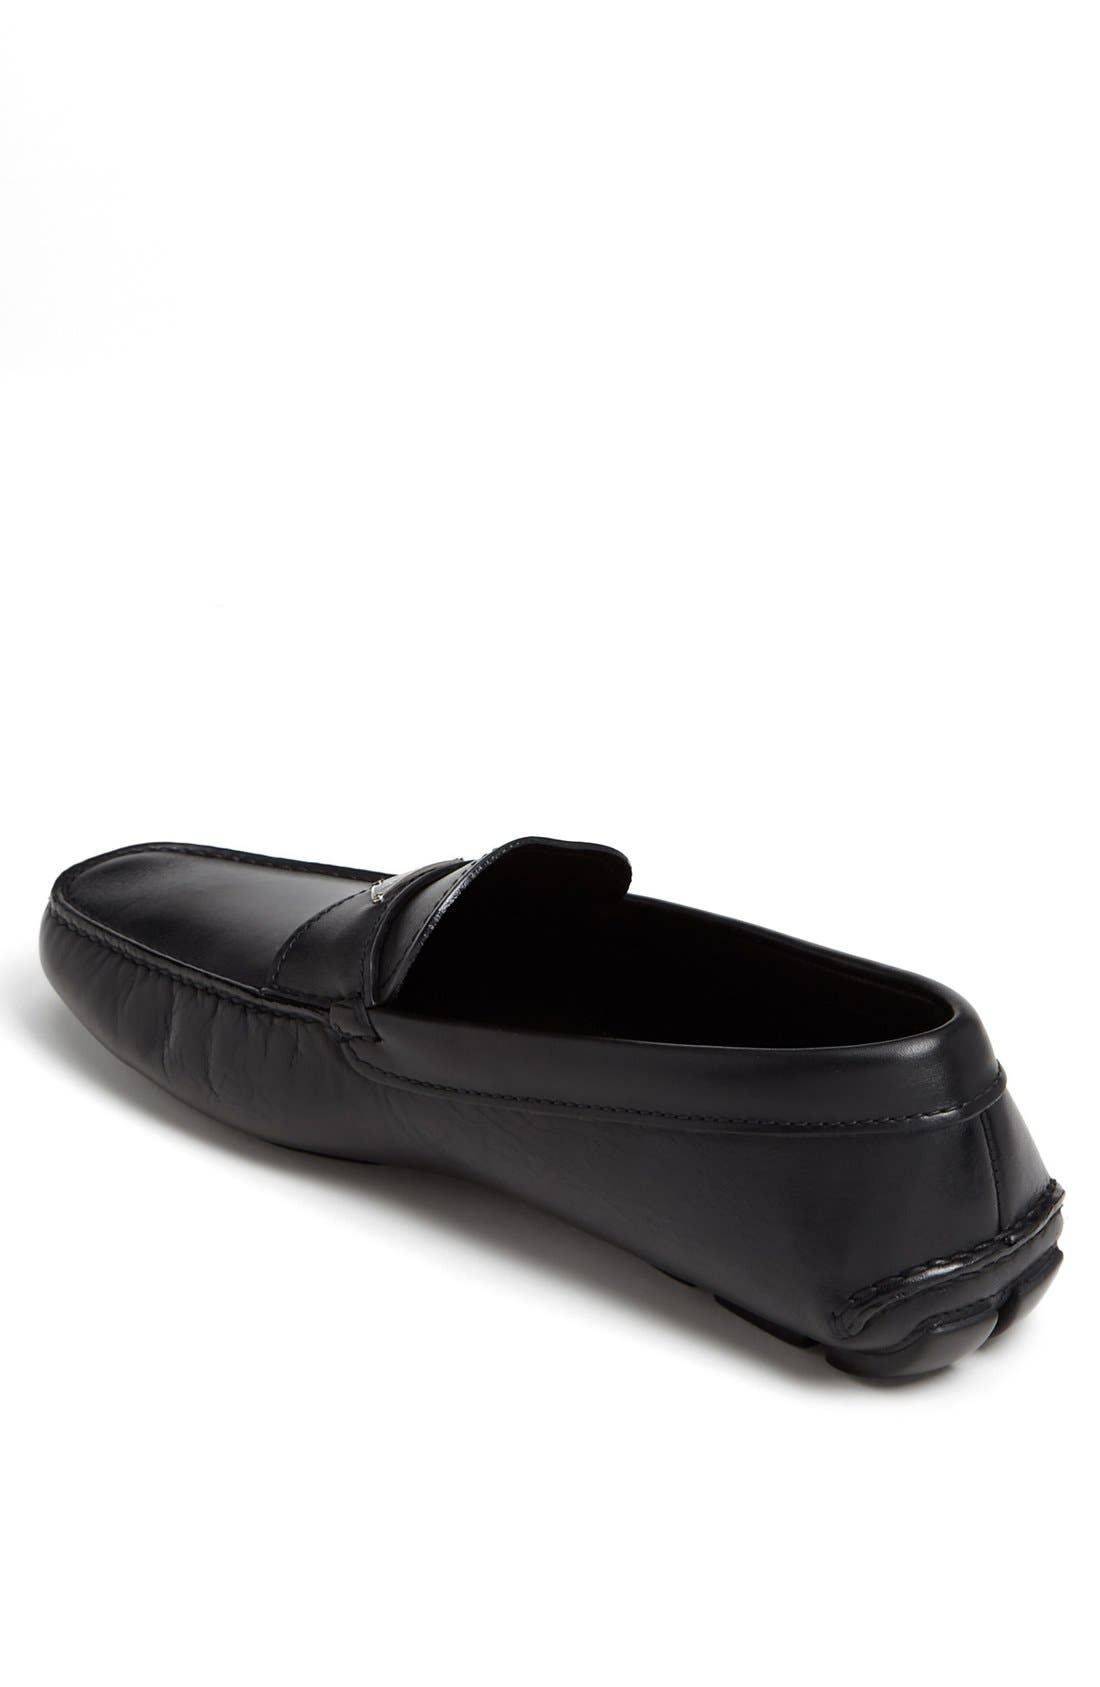 Alternate Image 2  - Prada Logo Bit Driving Shoe (Men)